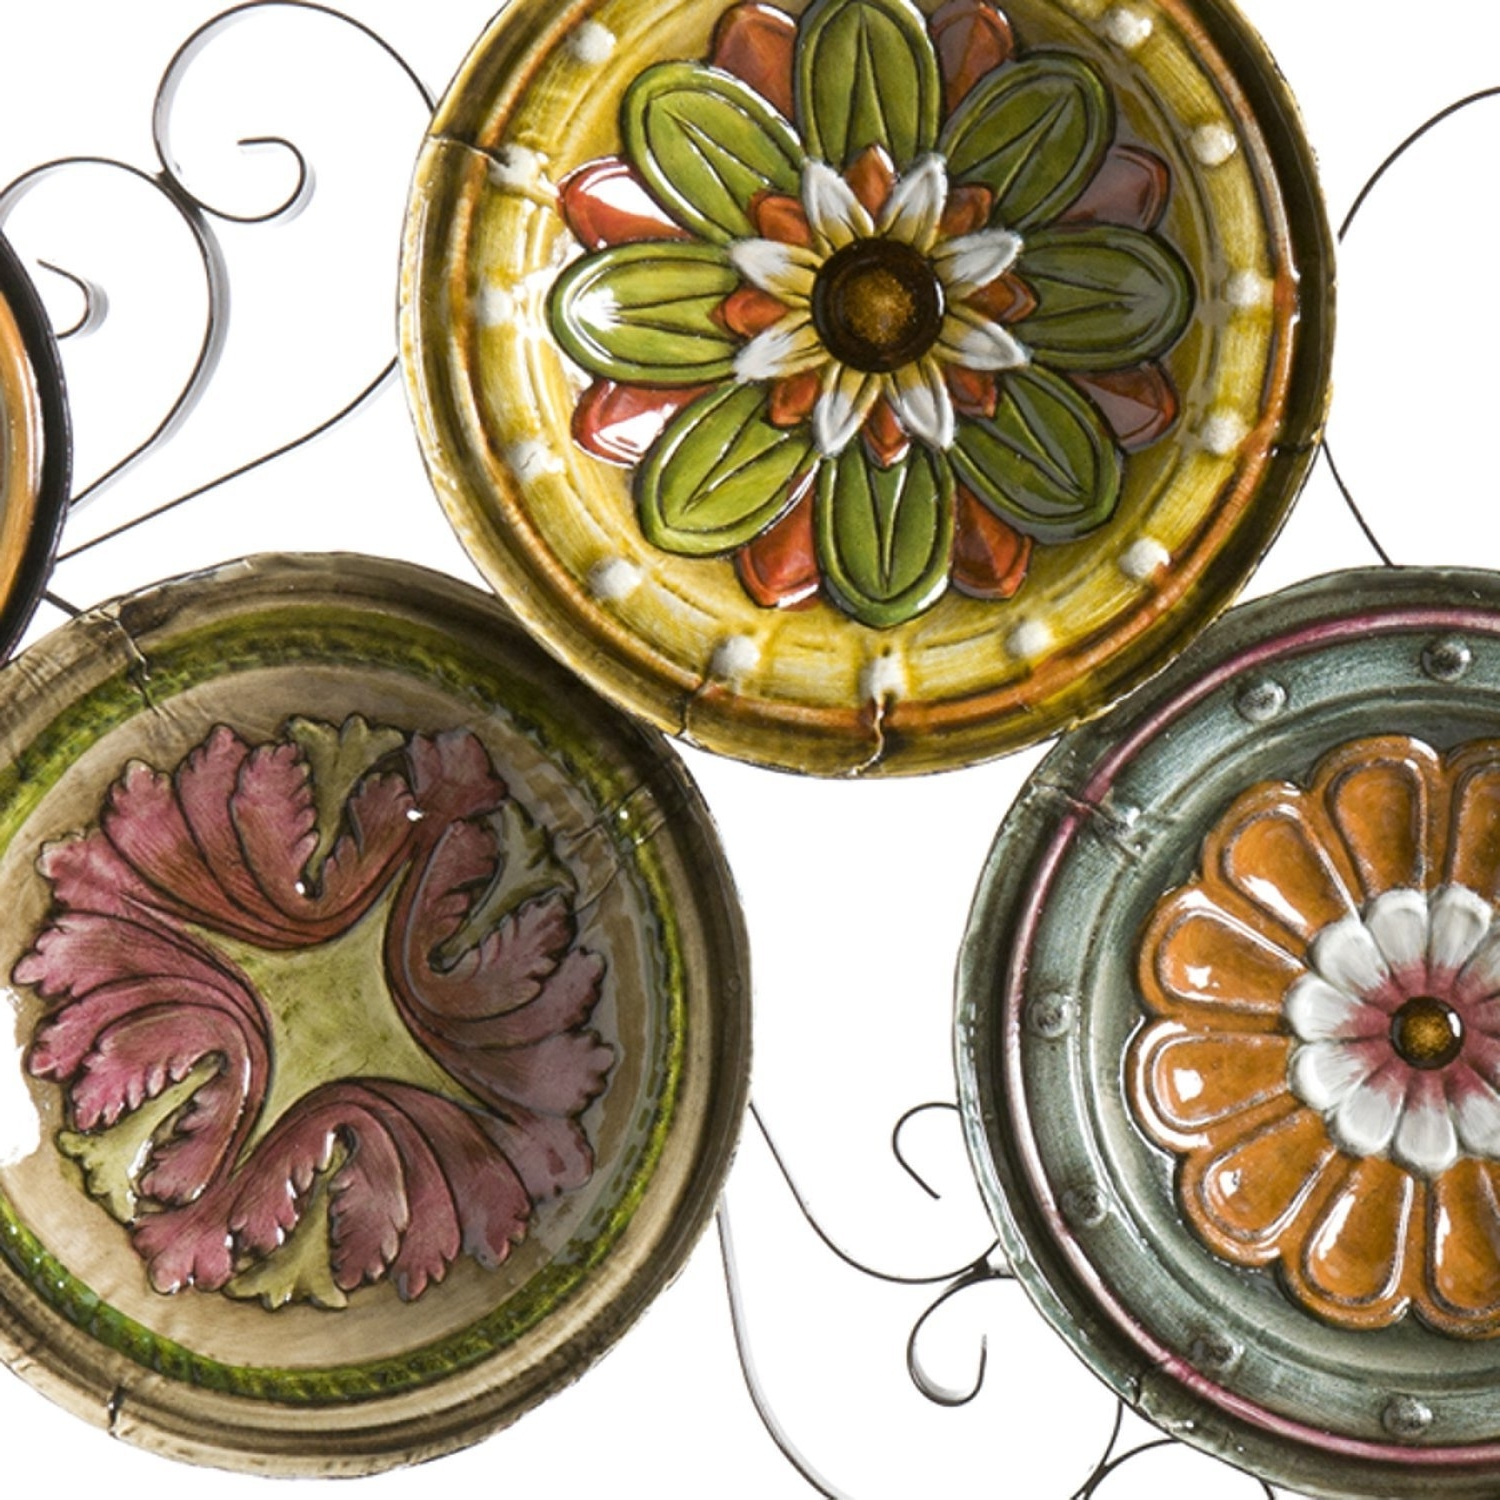 Scattered Italian Plates Wall Art Within Most Popular Amazon: Scattered Italian Plates Wall Art: Home & Kitchen (View 4 of 15)